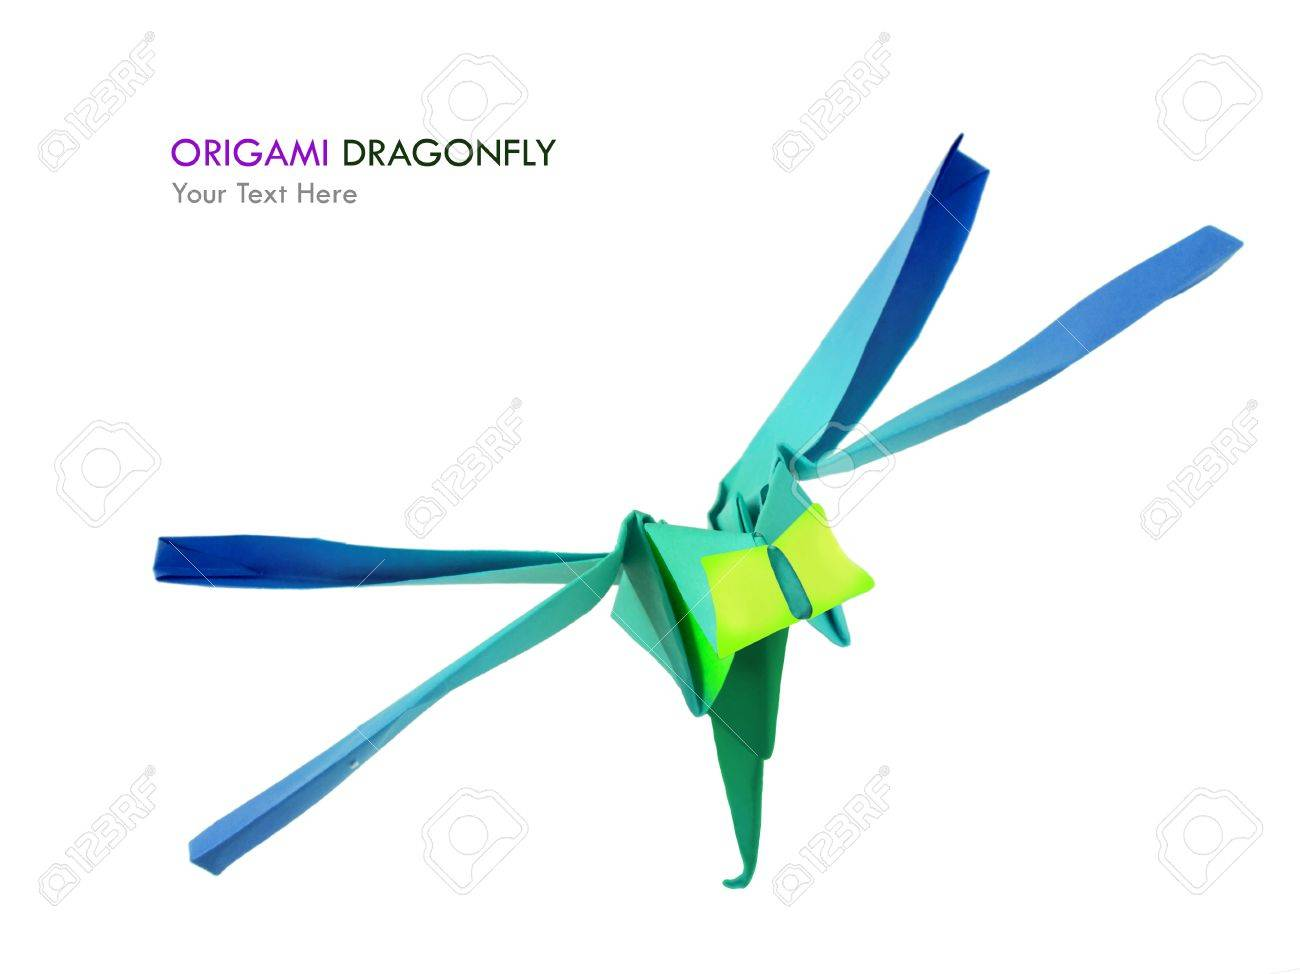 Origami paper dragonfly on a white background stock photo picture origami paper dragonfly on a white background stock photo 20786935 jeuxipadfo Image collections